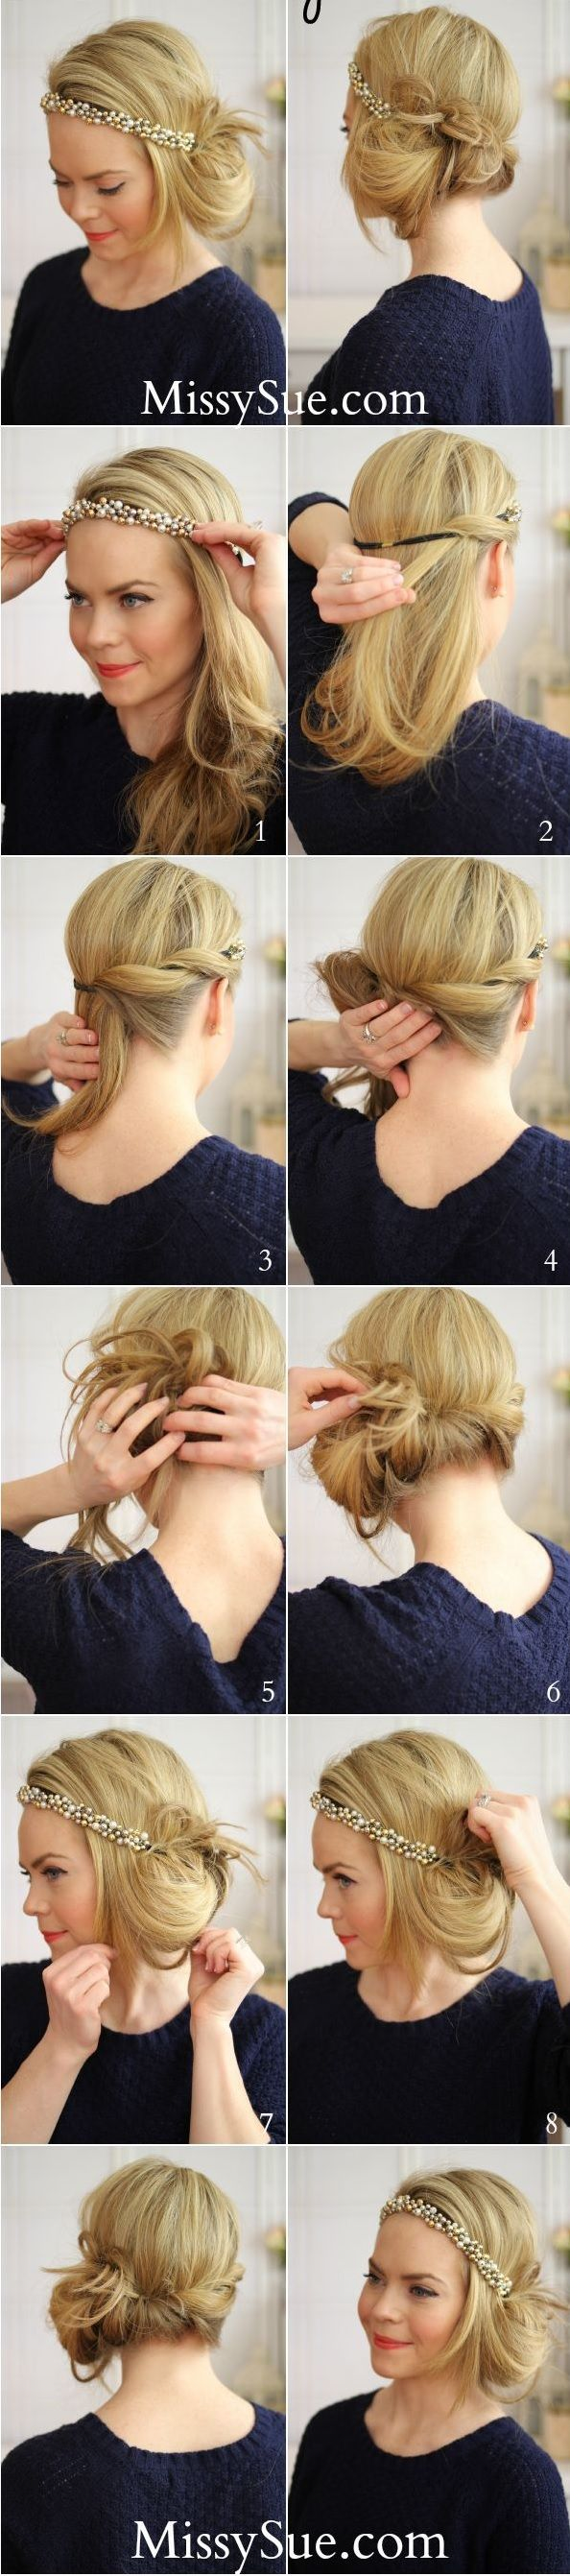 1000 Ideas About Coiffure Anne 20 On Pinterest Coiffure Anne